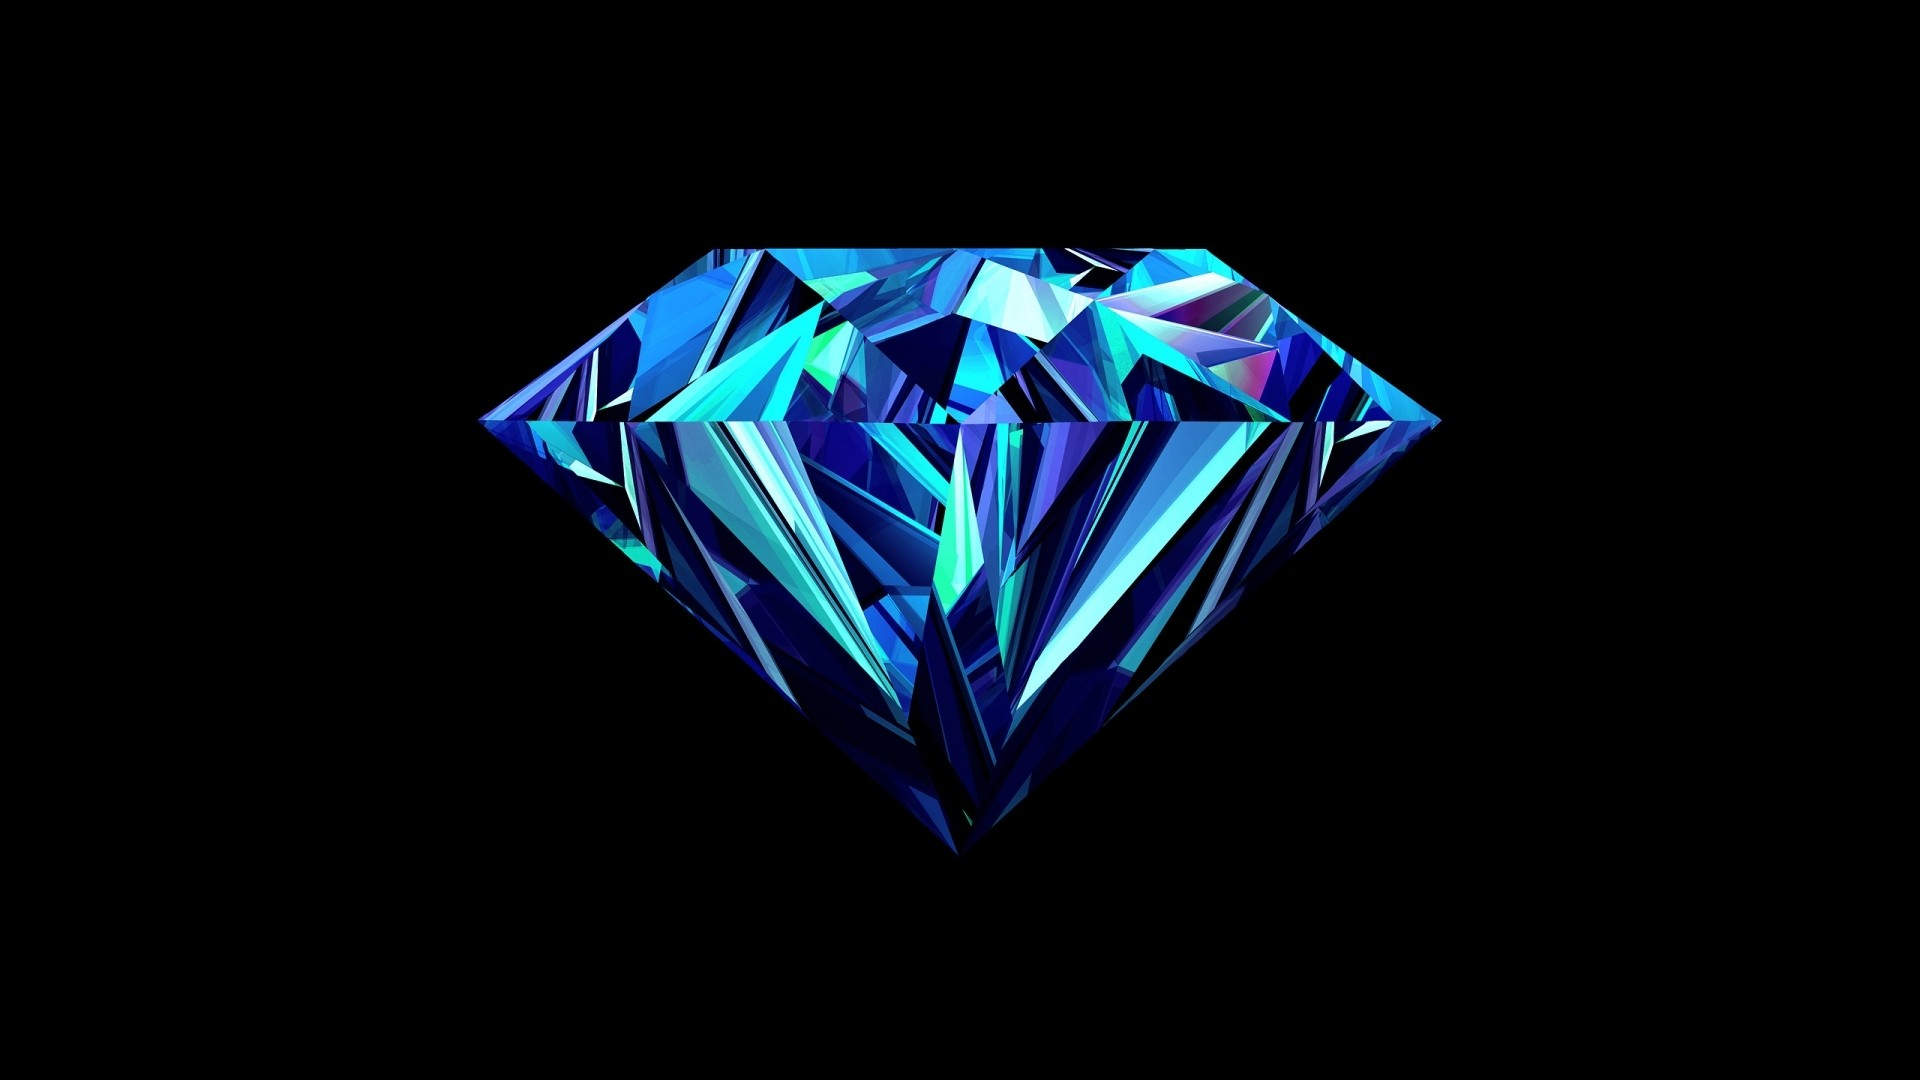 Diamond Desktop wallpaper